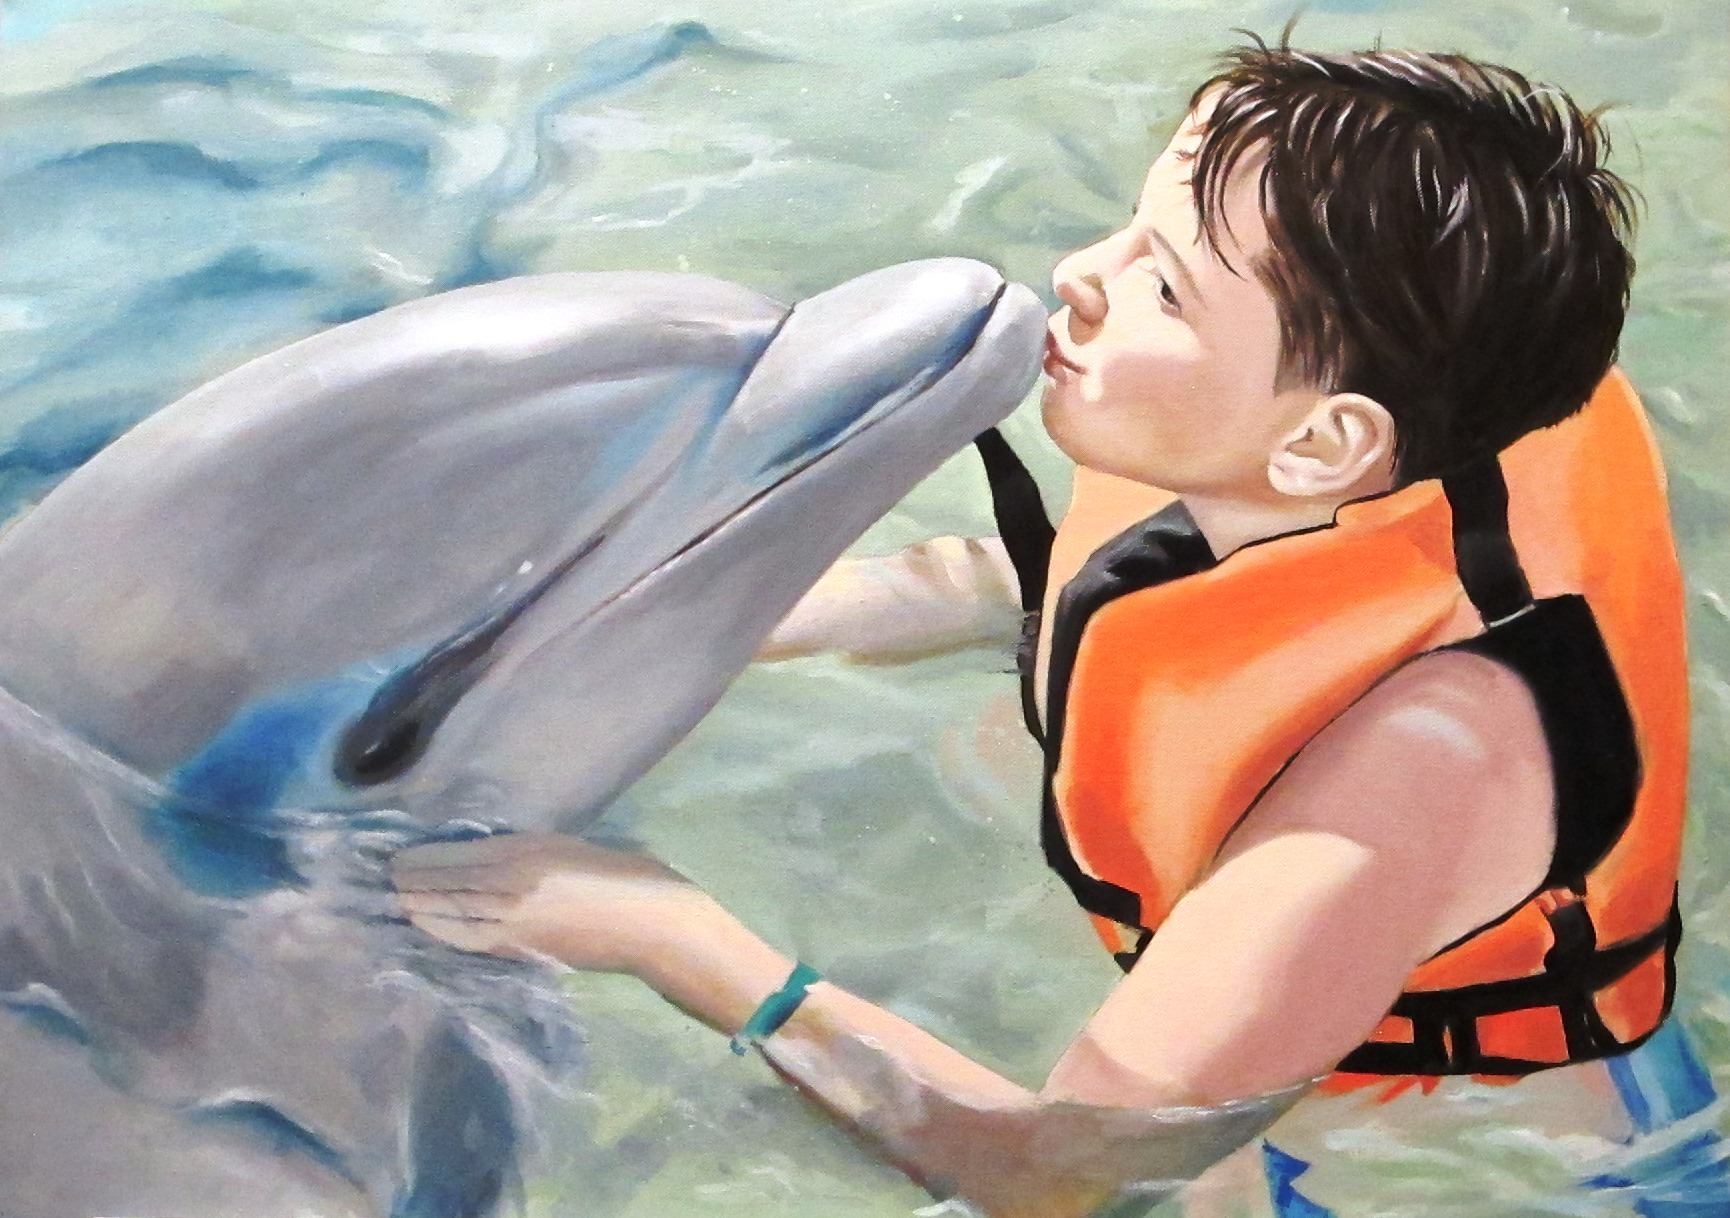 The boy and the dolphin, 2019, oil on canvas, 50 x 70 cm